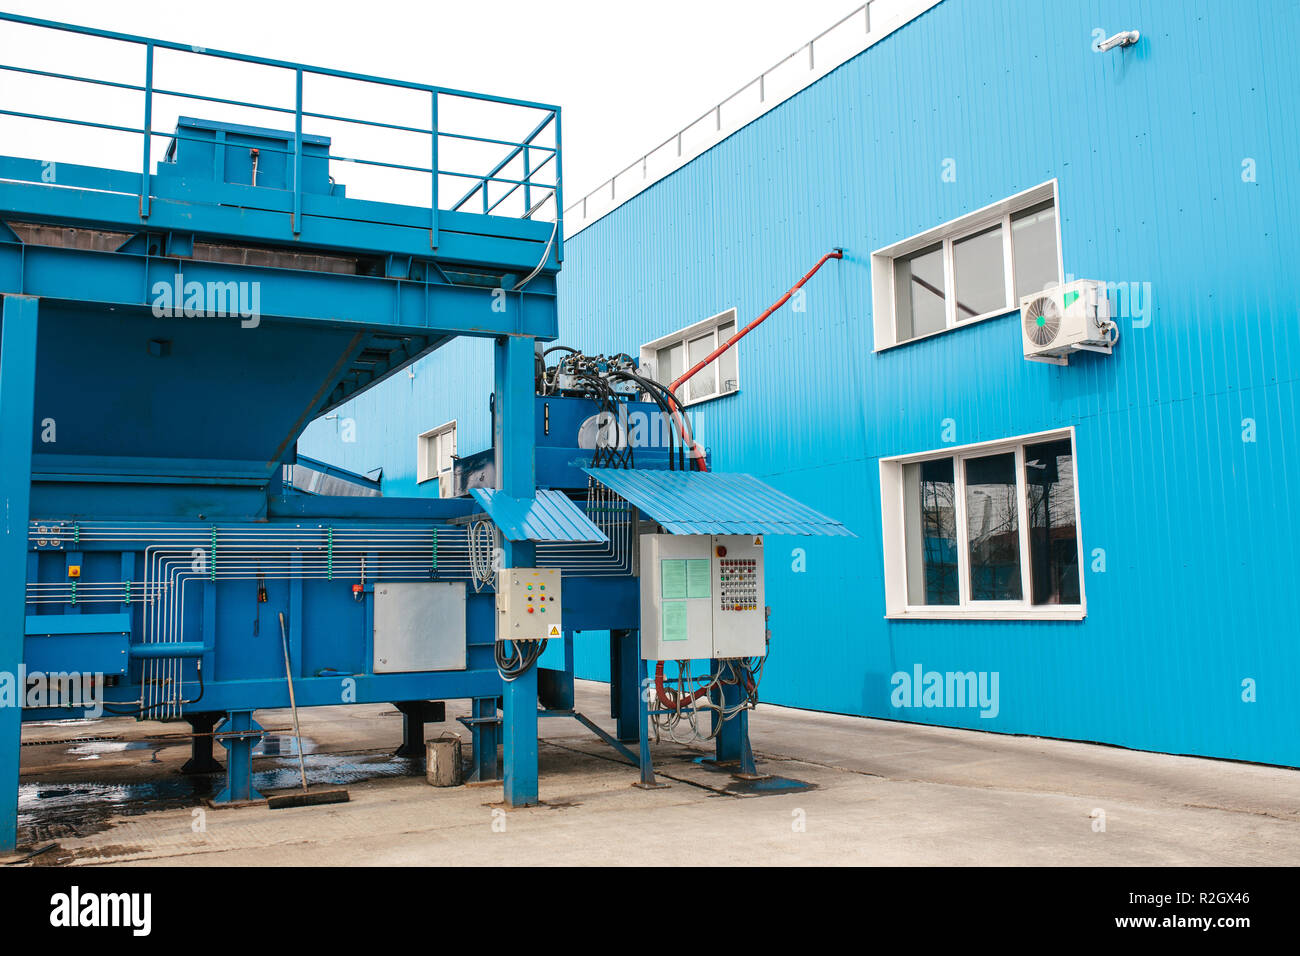 A site for loading waste into containers at a waste sorting and recycling plant. The control panel for the process of loading. - Stock Image